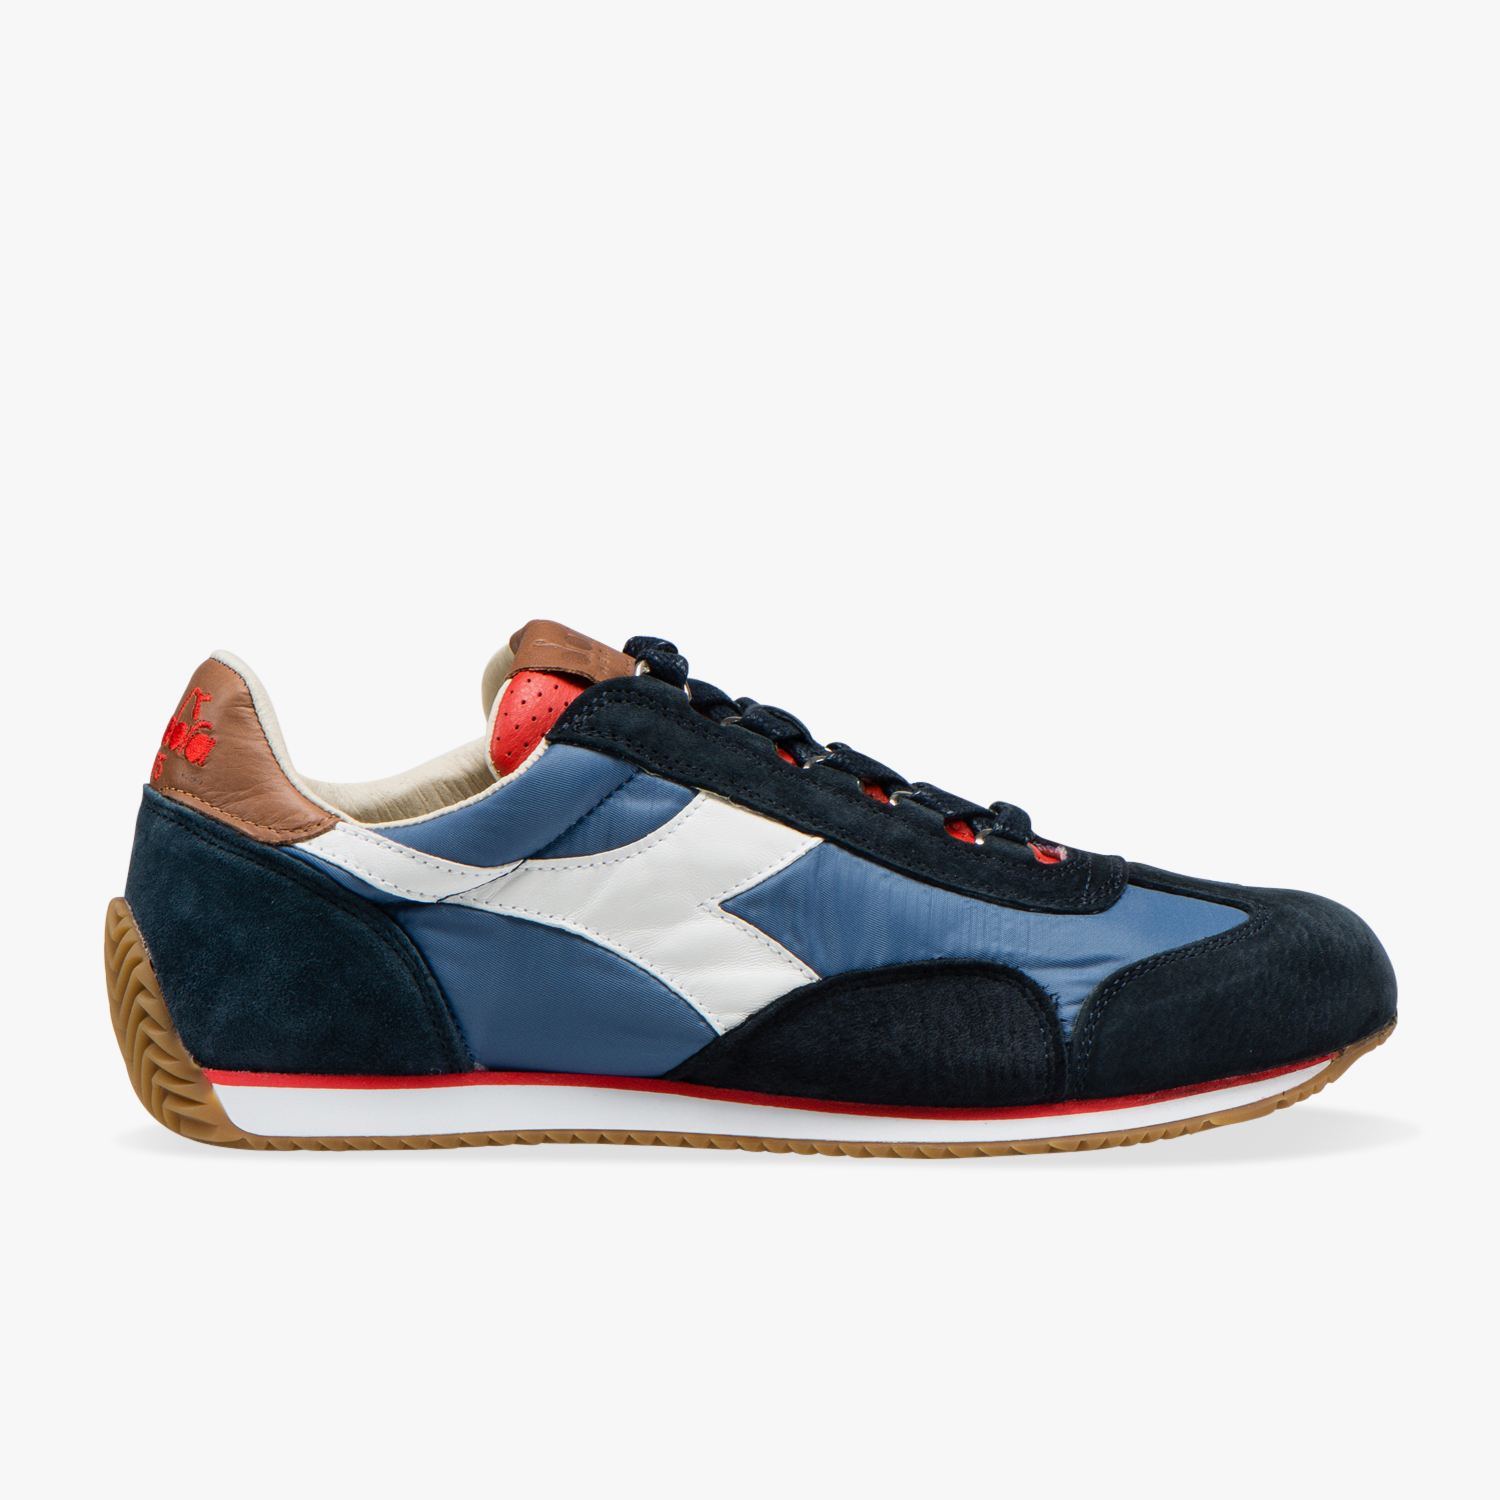 acquisto economico migliori offerte su 100% genuino Diadora Heritage EQUIPE ITA - Diadora Online Shop INT